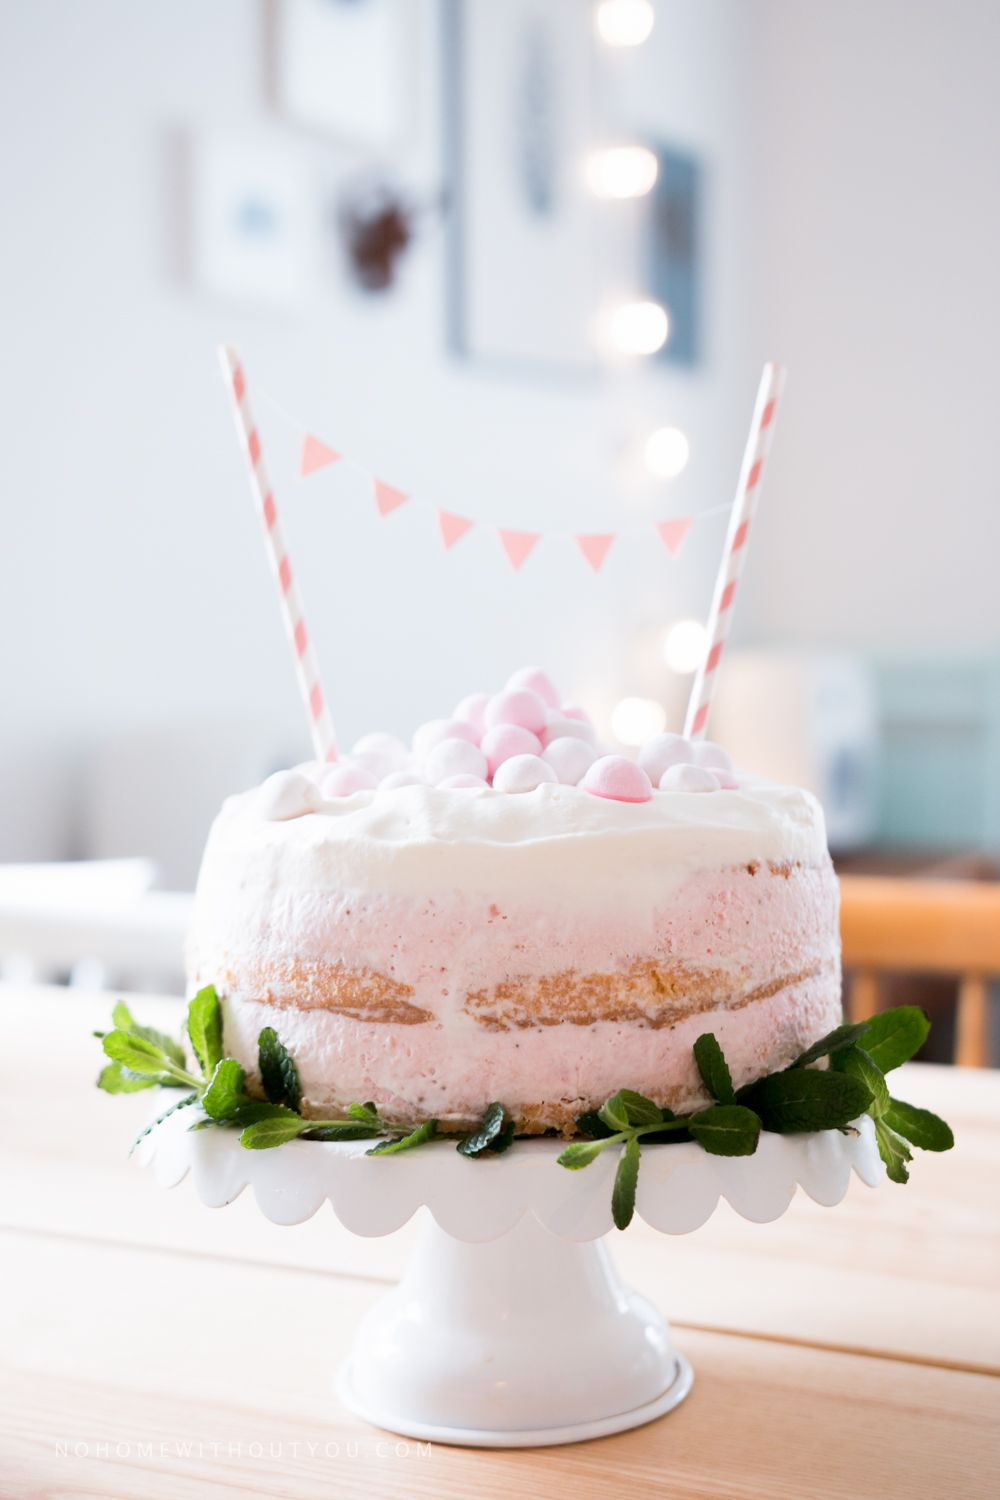 Strawberry Naked Cake - No home without you (1 of 13)